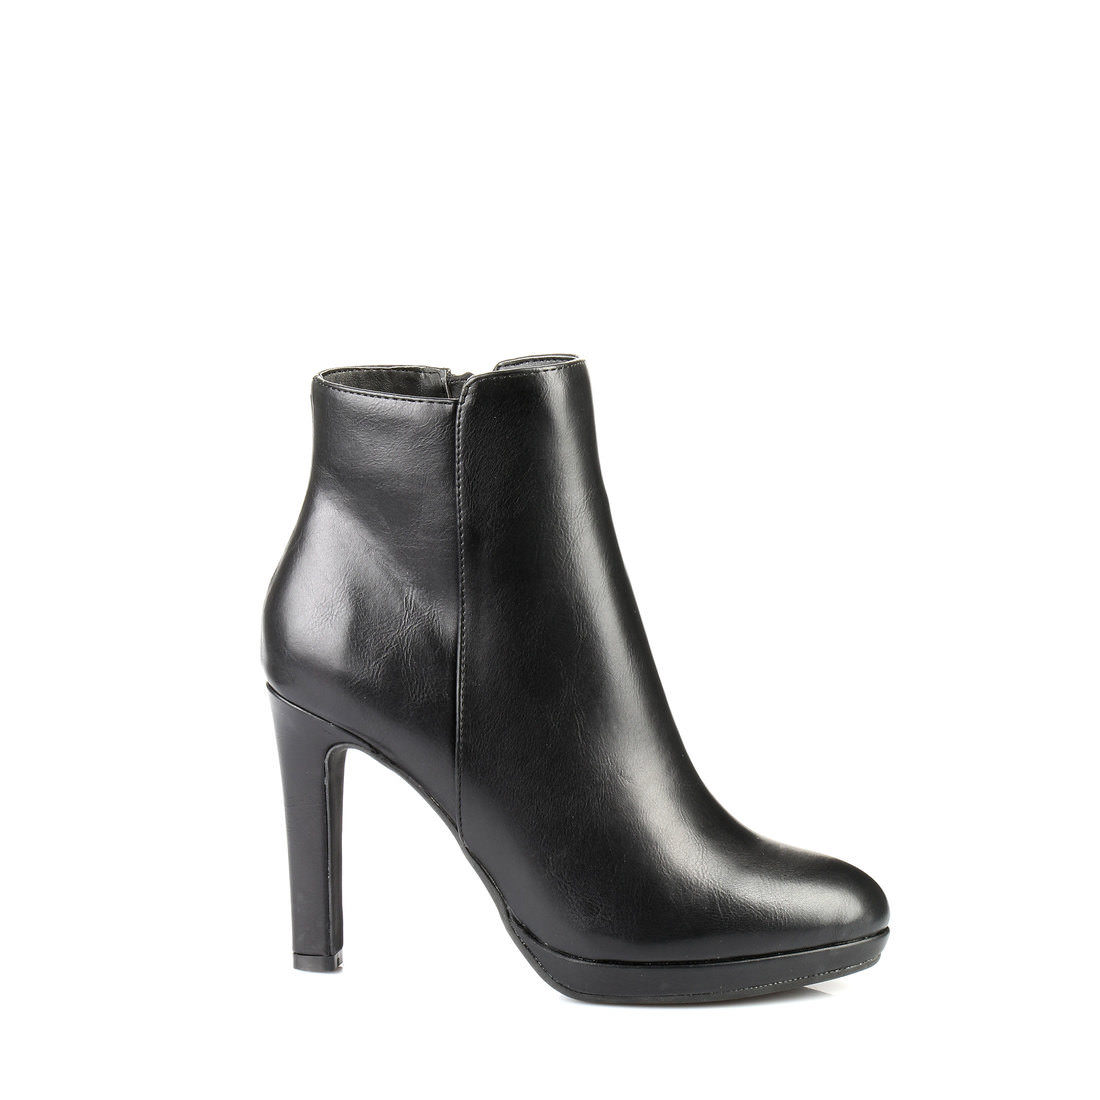 buffalo plateau ankle boots in black buy online in buffalo online shop buffalo online shop. Black Bedroom Furniture Sets. Home Design Ideas